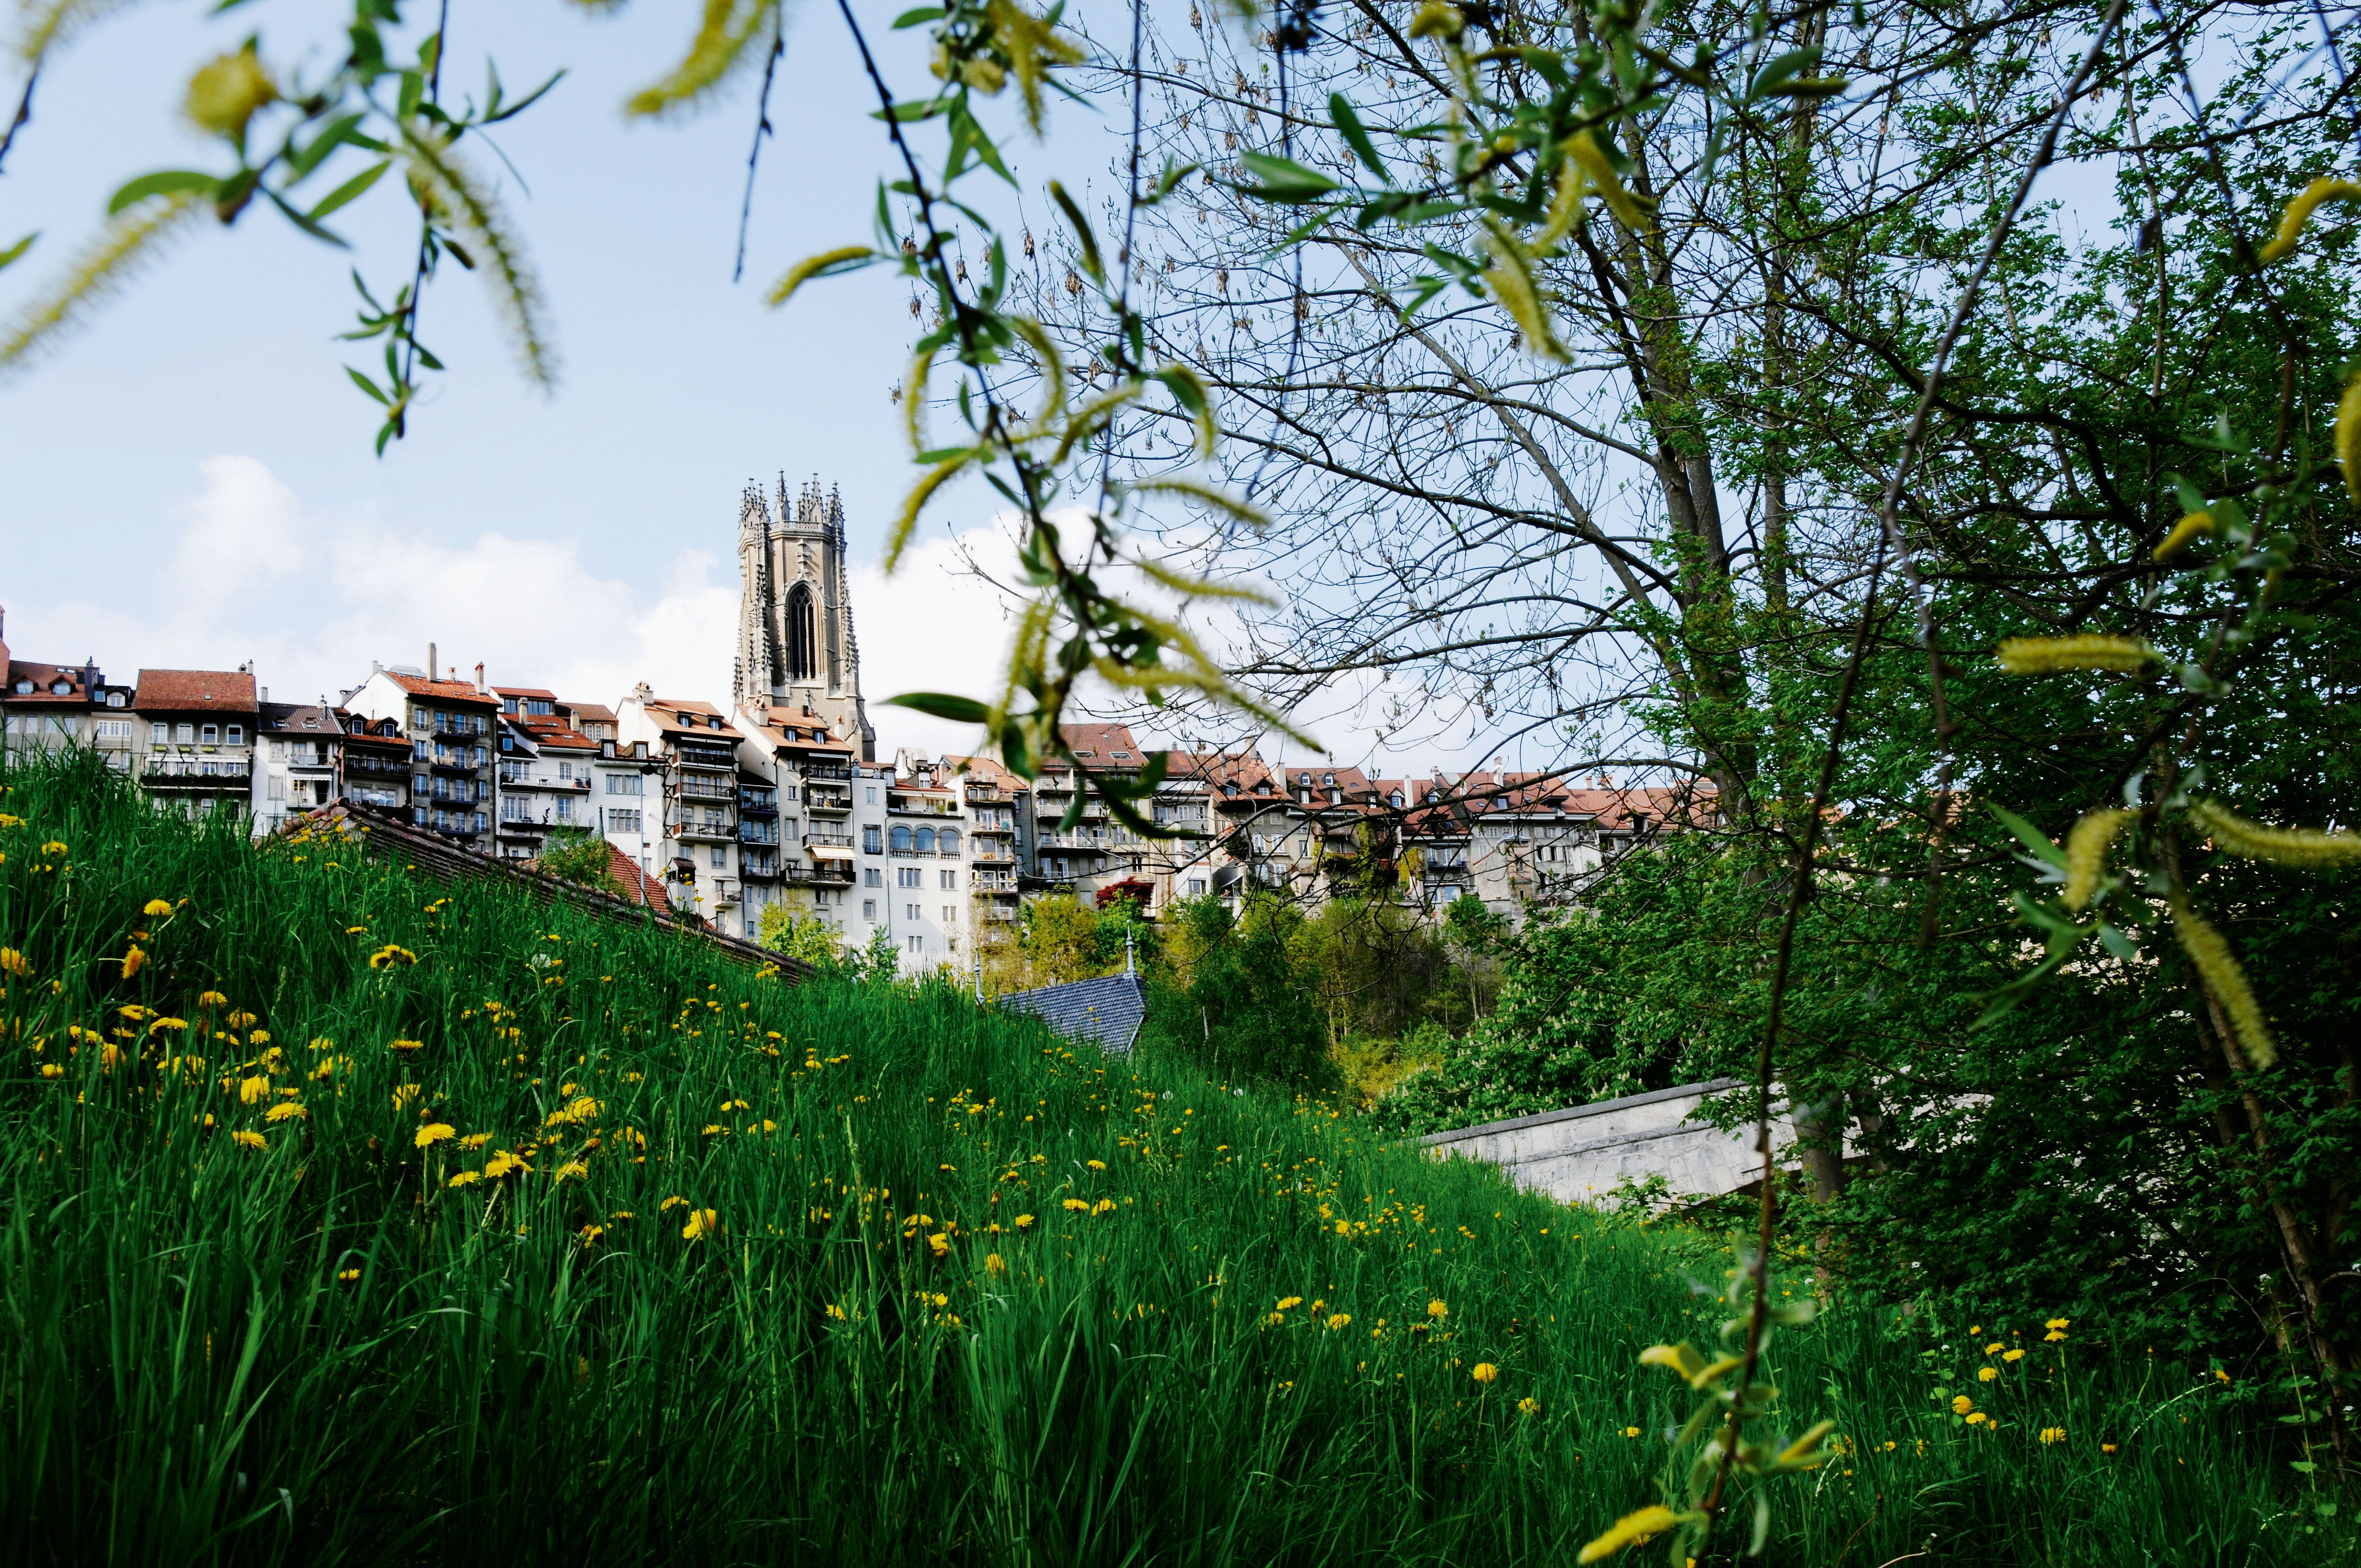 The old town of Fribourg with the famous cathedral.  © Thierry Pradervand #fribourg #summer #oldtown #flowers